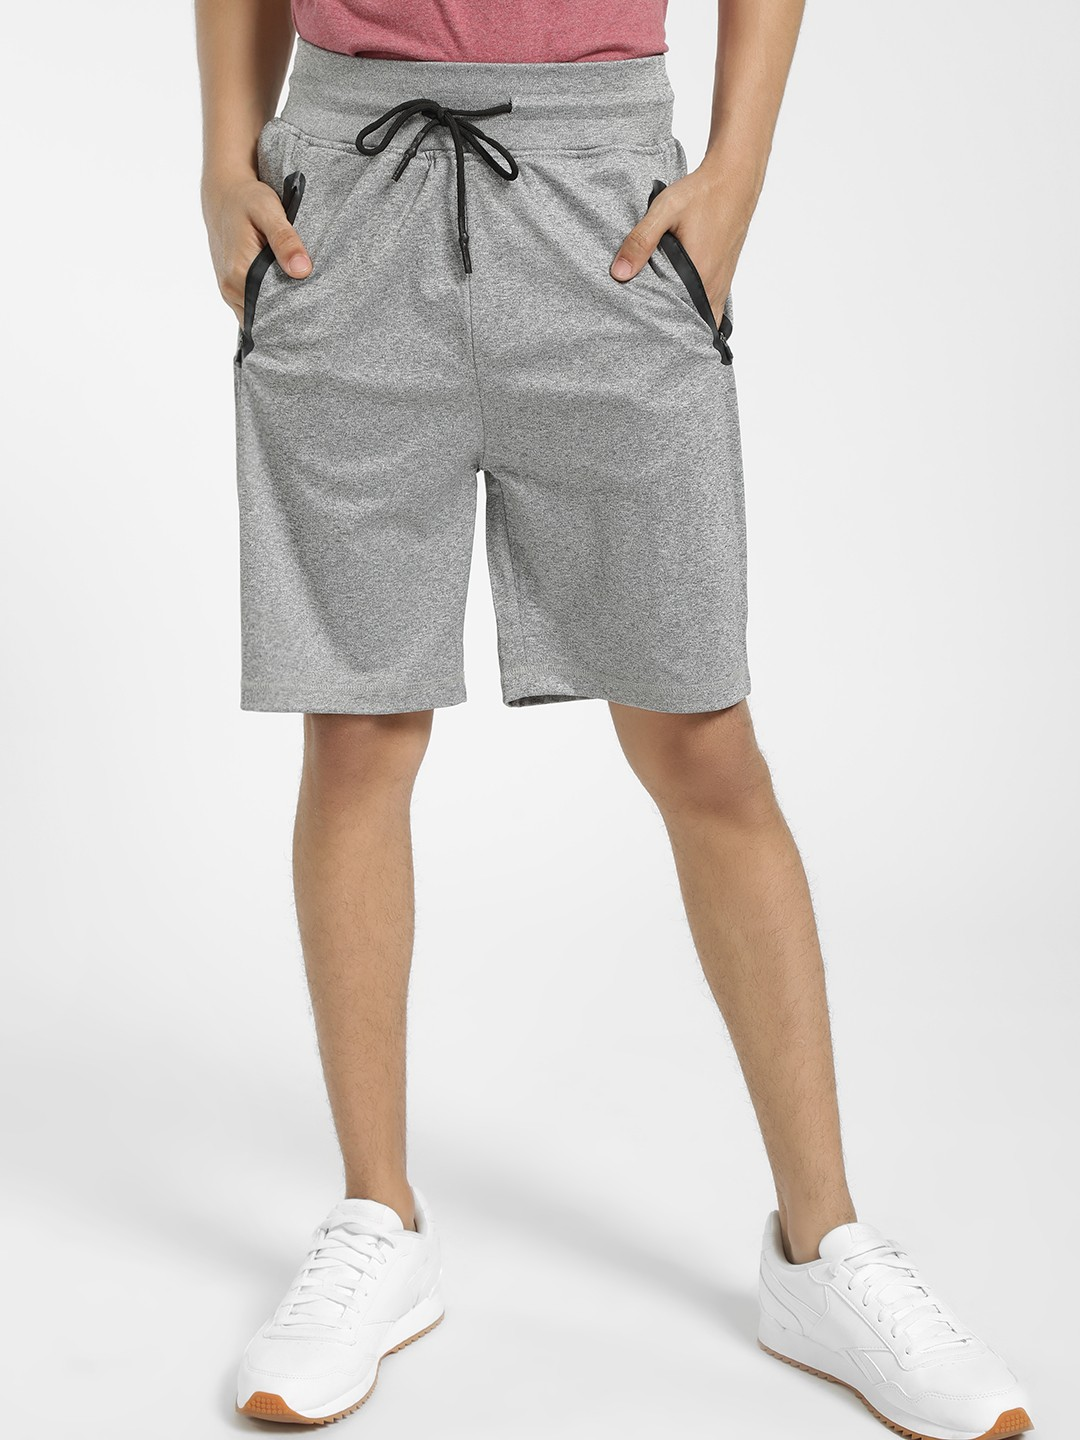 SKULT By Shahid Kapoor Grey Knitted Shorts 1